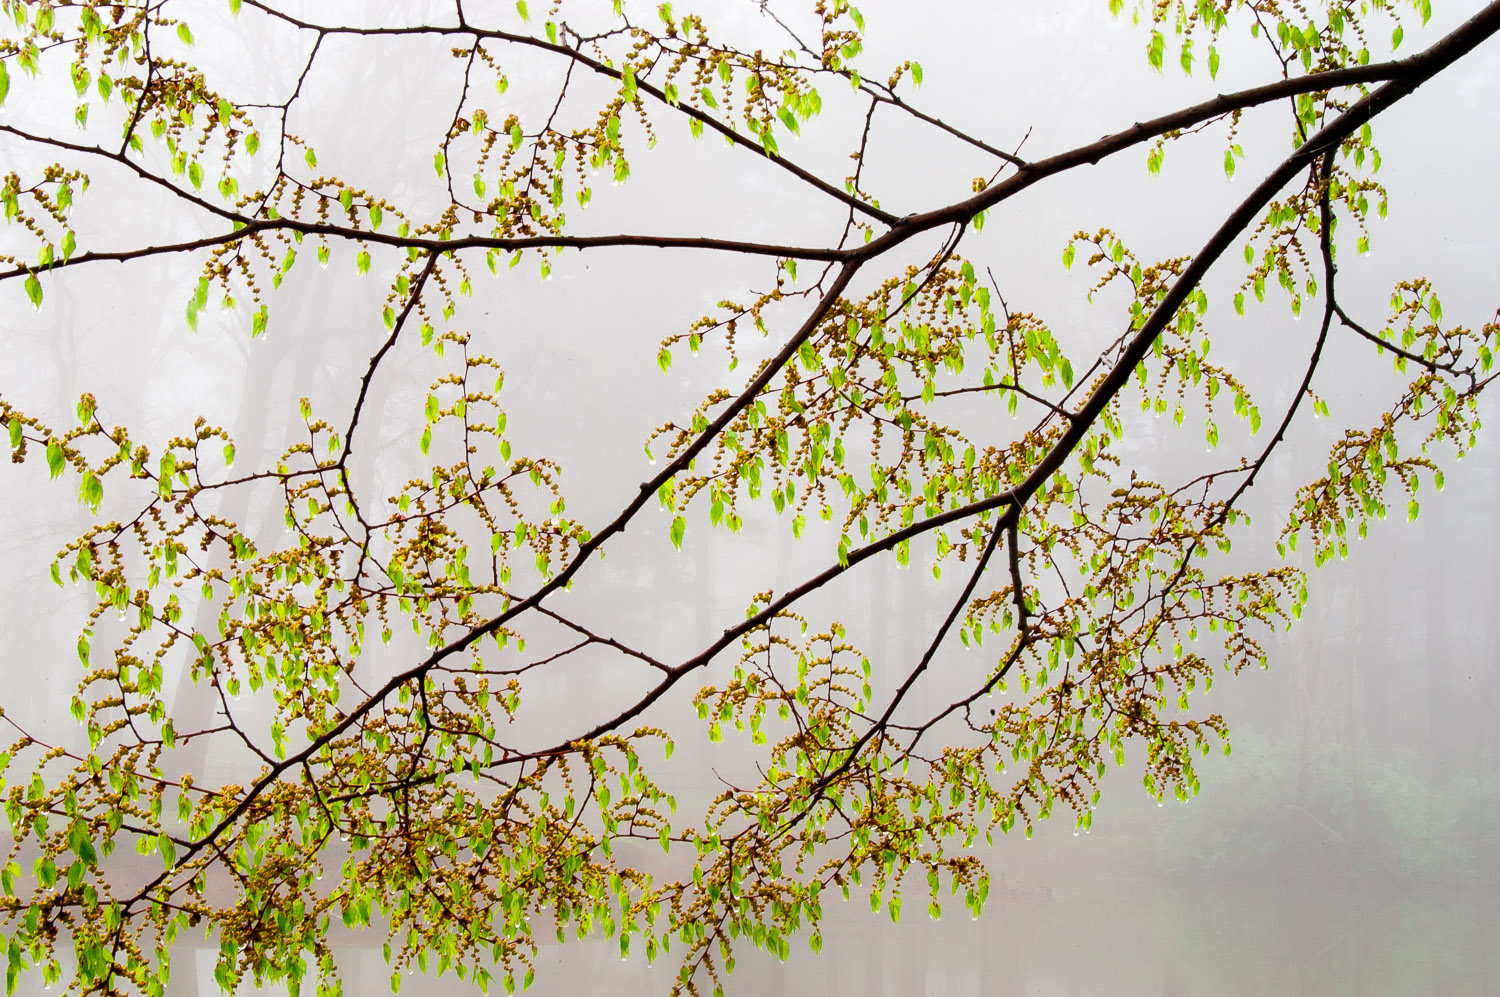 Early Spring Leaves on Foggy Morning